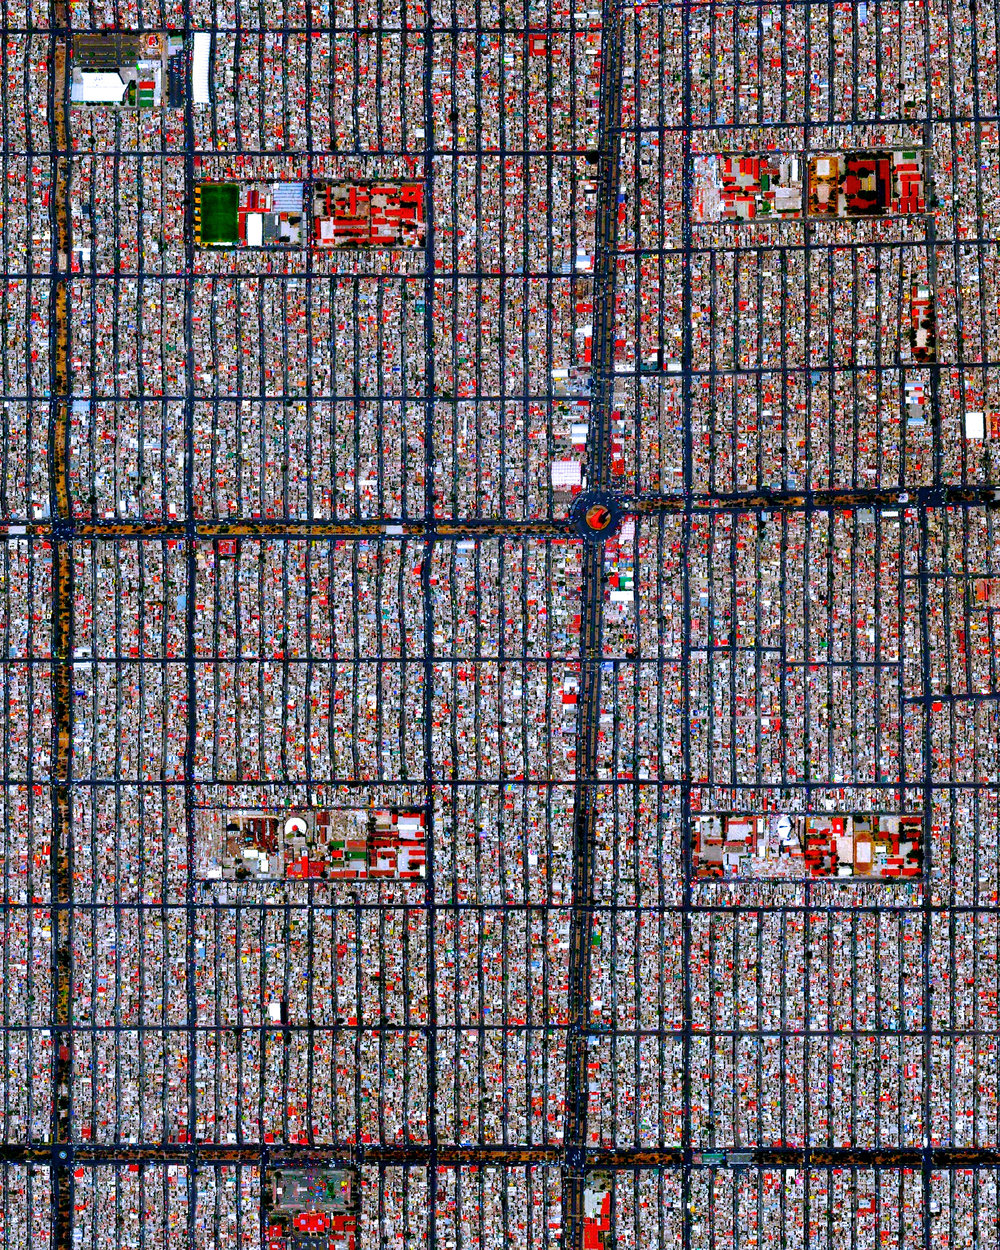 """This Overview captures the tightly gridded streets of Nezahualcóyotl, a municipality of Mexico City. With a population of more than one million, this area is home to many of the capital's citizens who have migrated there from other parts of the country. The Greater Mexico City area has roughly 21 million residents, making it the largest metropolitan area in North America.  19°24'26.8""""N, 99°01'40.2""""W  Source imagery: DigitalGlobe"""